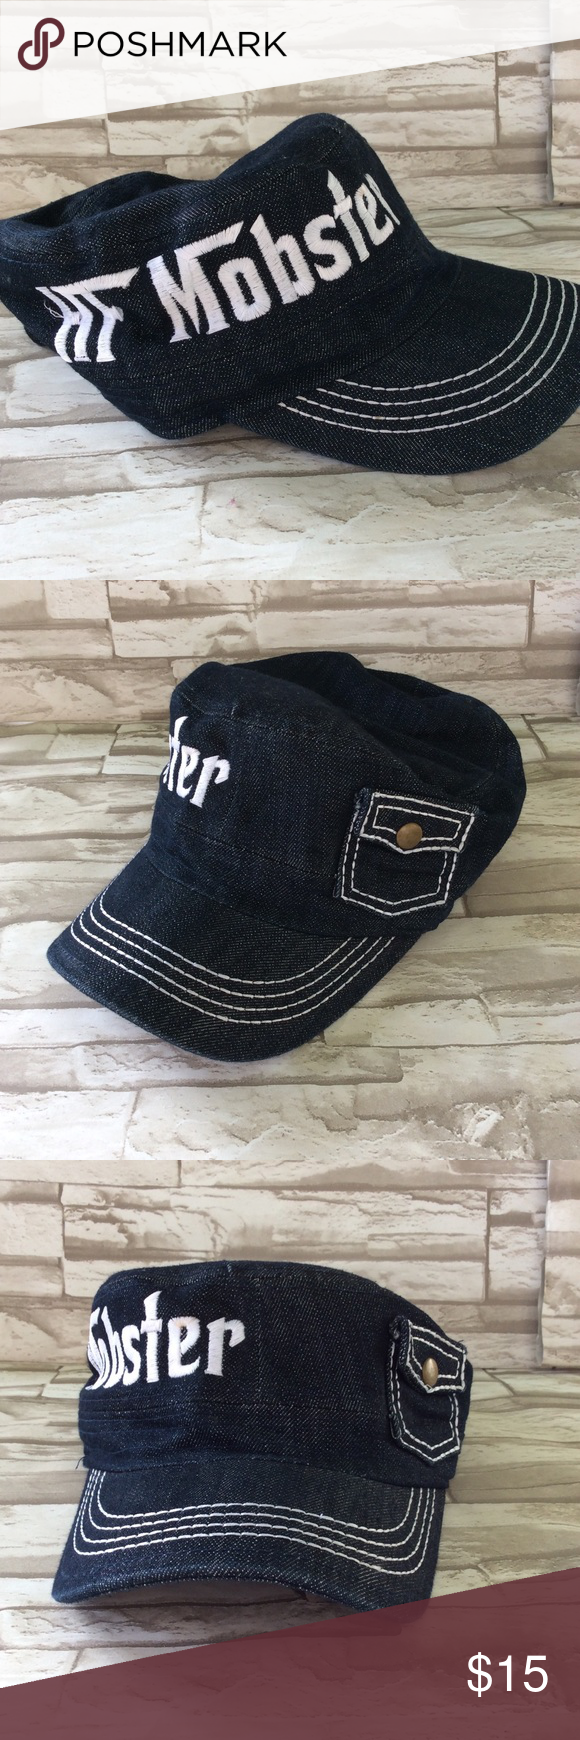 """💜Mobster Cap by Pitbull Great hat from Pitbull. Blue denim page boy style hat with """"HF Mobster"""" embroidered on the side. There's also a small pocket. Bill is in great shape, and it's very clean. Women's size. Pitbull Accessories Hats"""